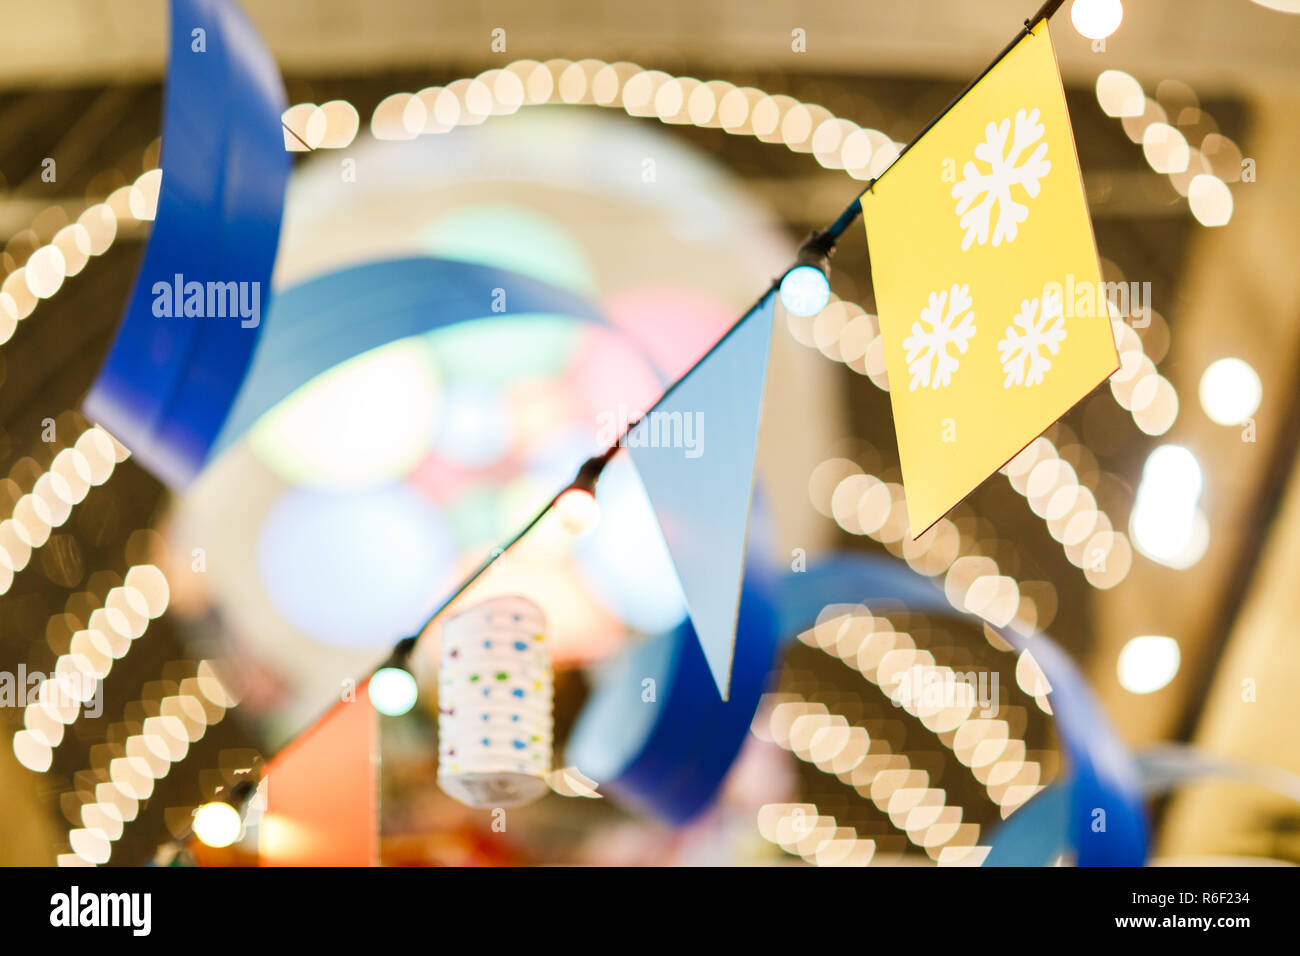 Photo of Christmas flags on blurred background Stock Photo